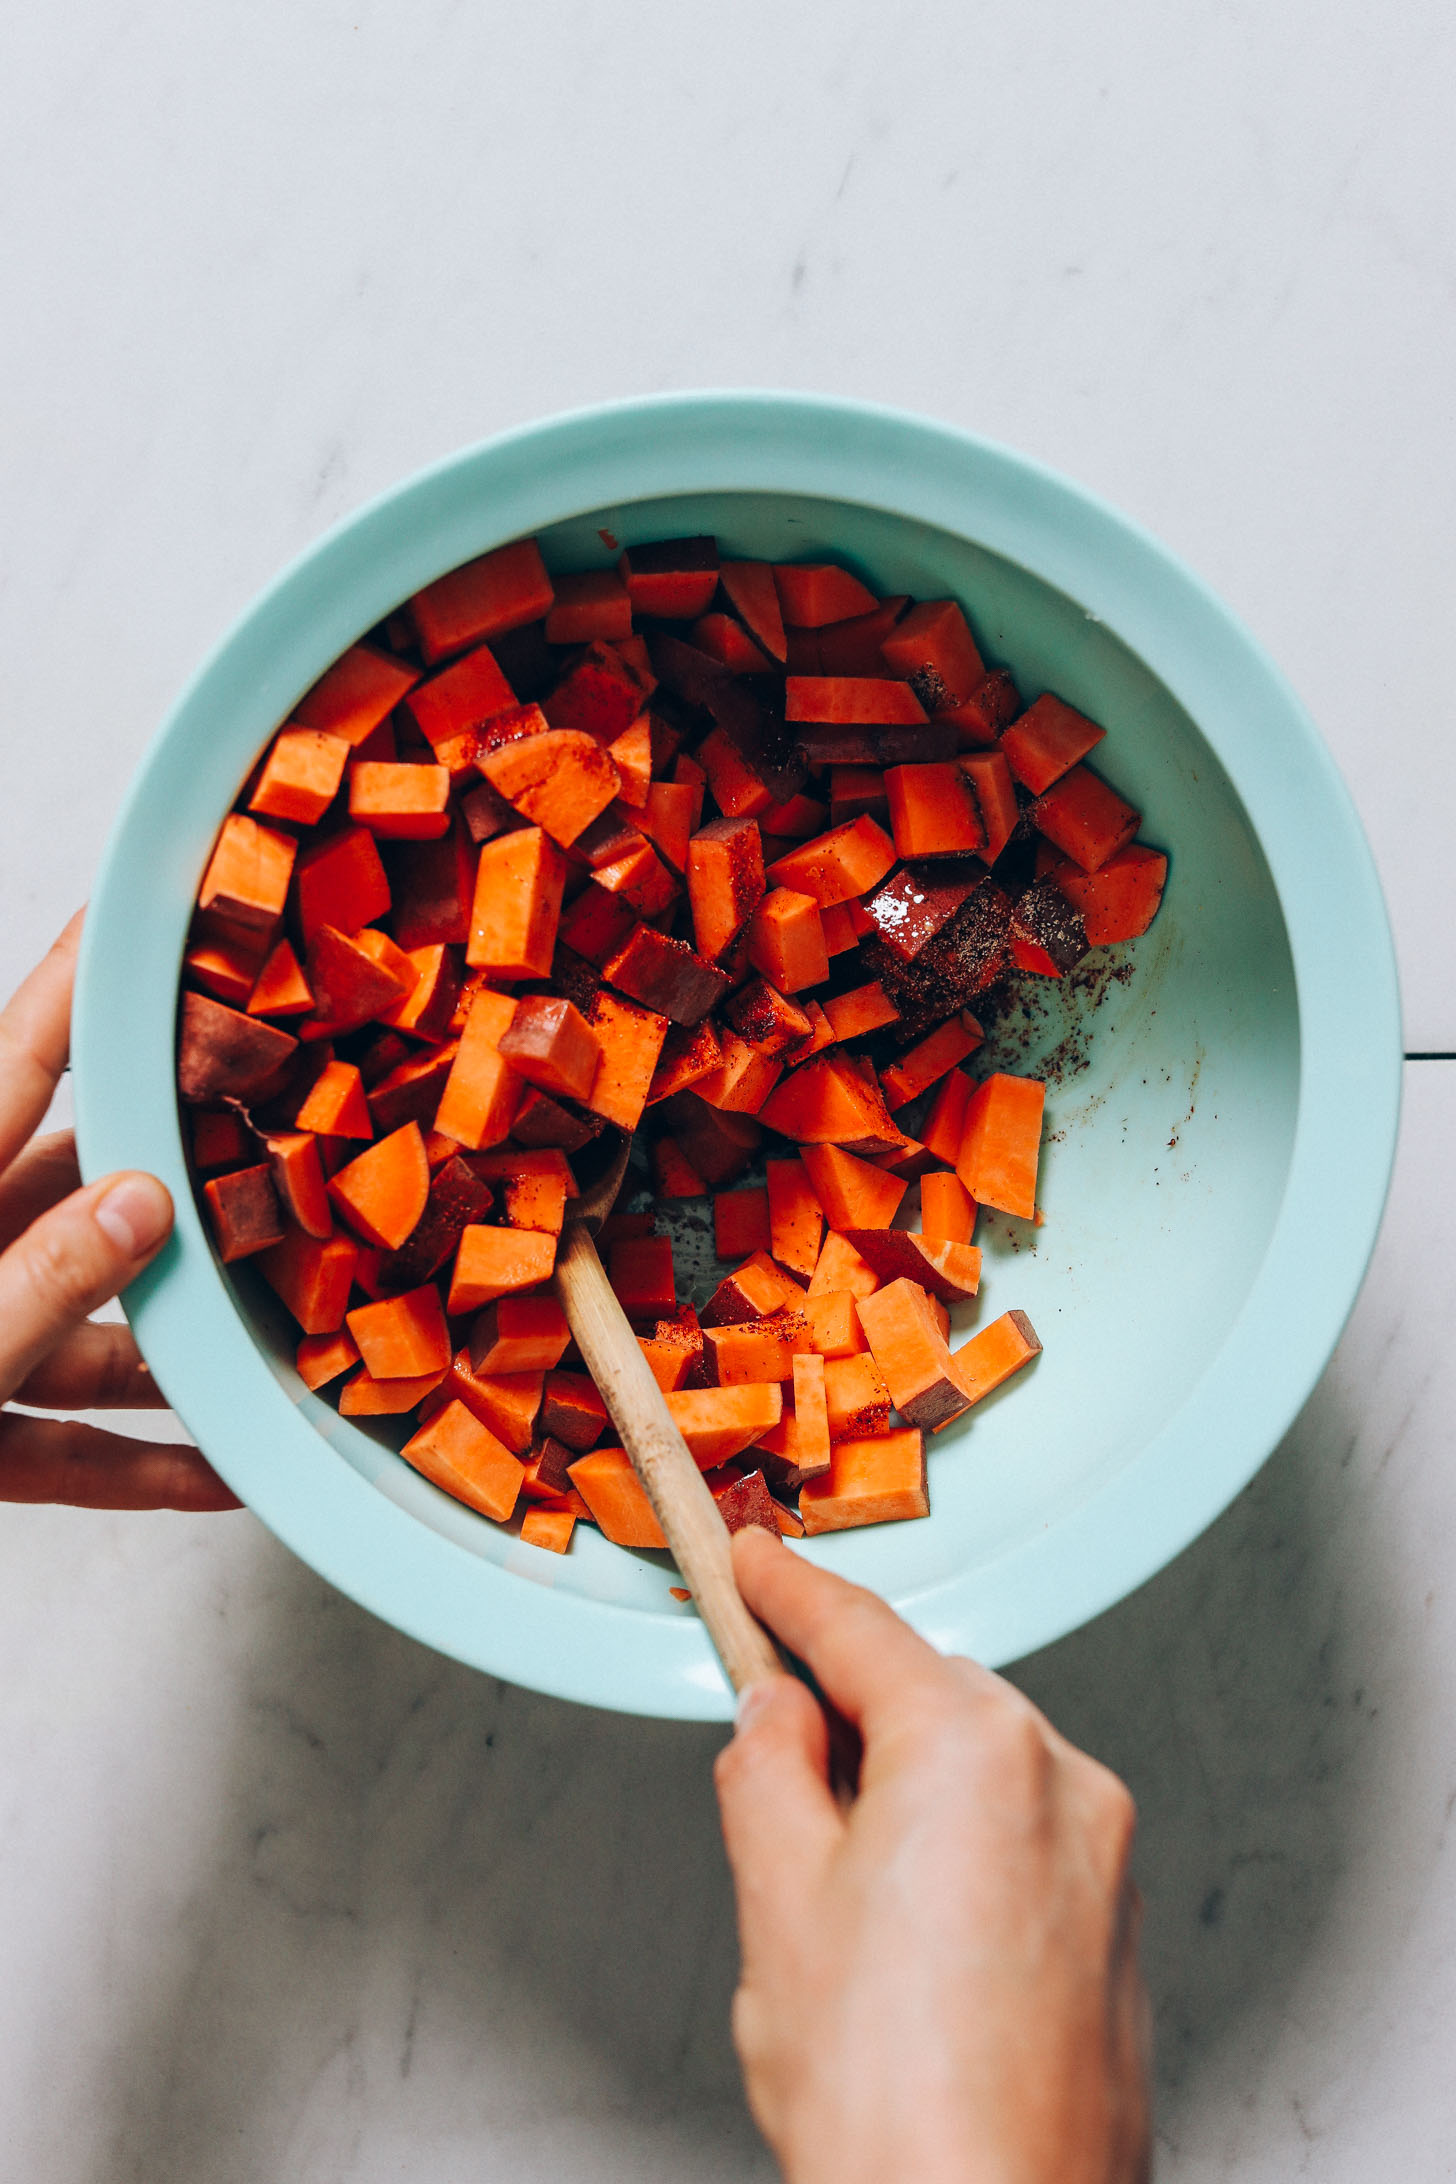 Stirring cubed sweet potatoes with oil and BBQ spices